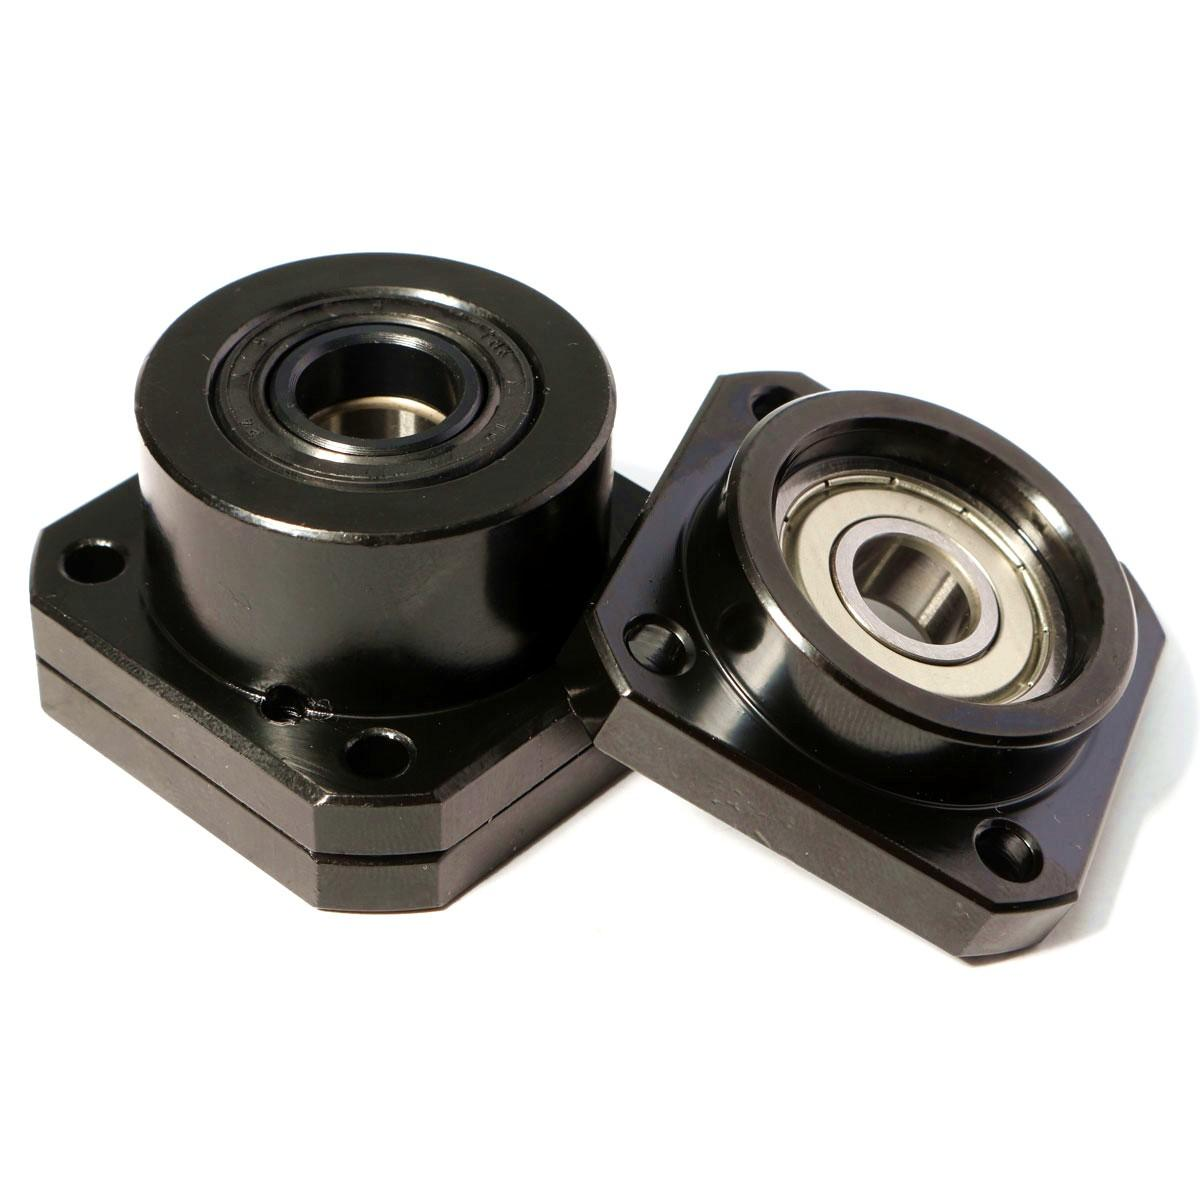 1 set CNC Ballscrew end support FK12 Fixed FF12 Floated side bearing block mount